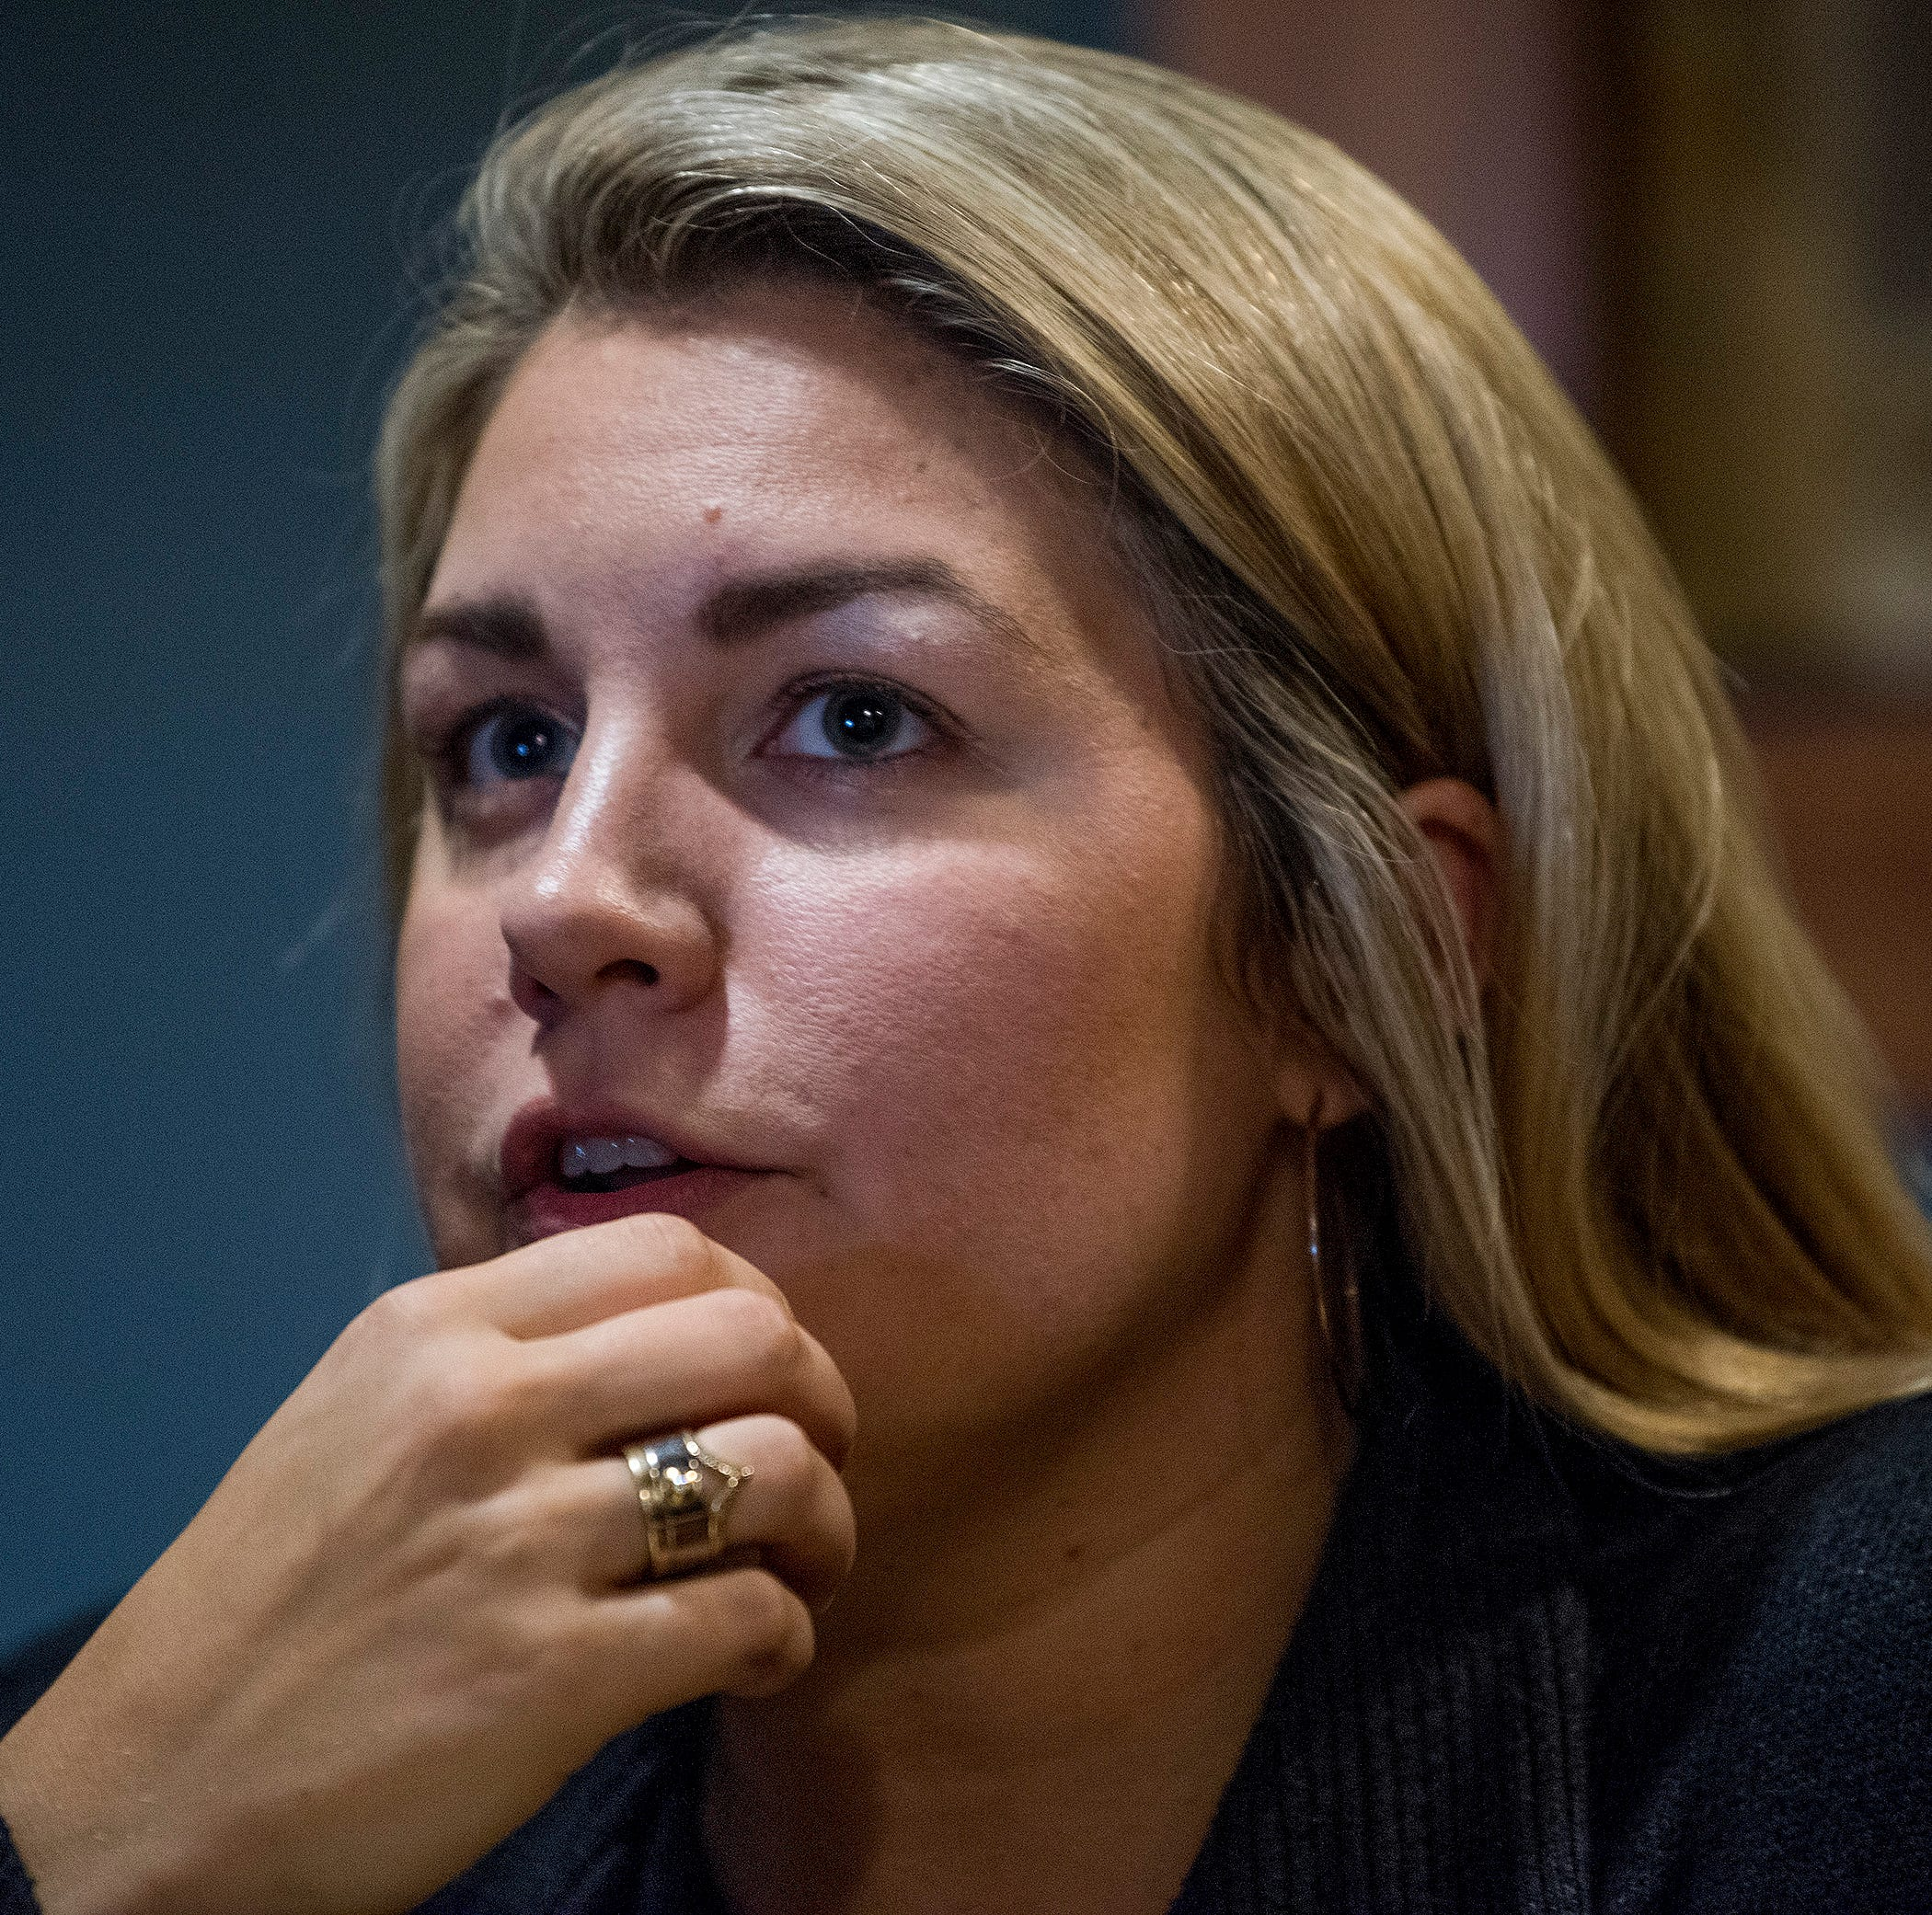 Mallory Hagan, candidate for Alabama House Seat District 3, talks about her campaign during an interview in Opelika, Ala. on Wednesday August 22, 2018.